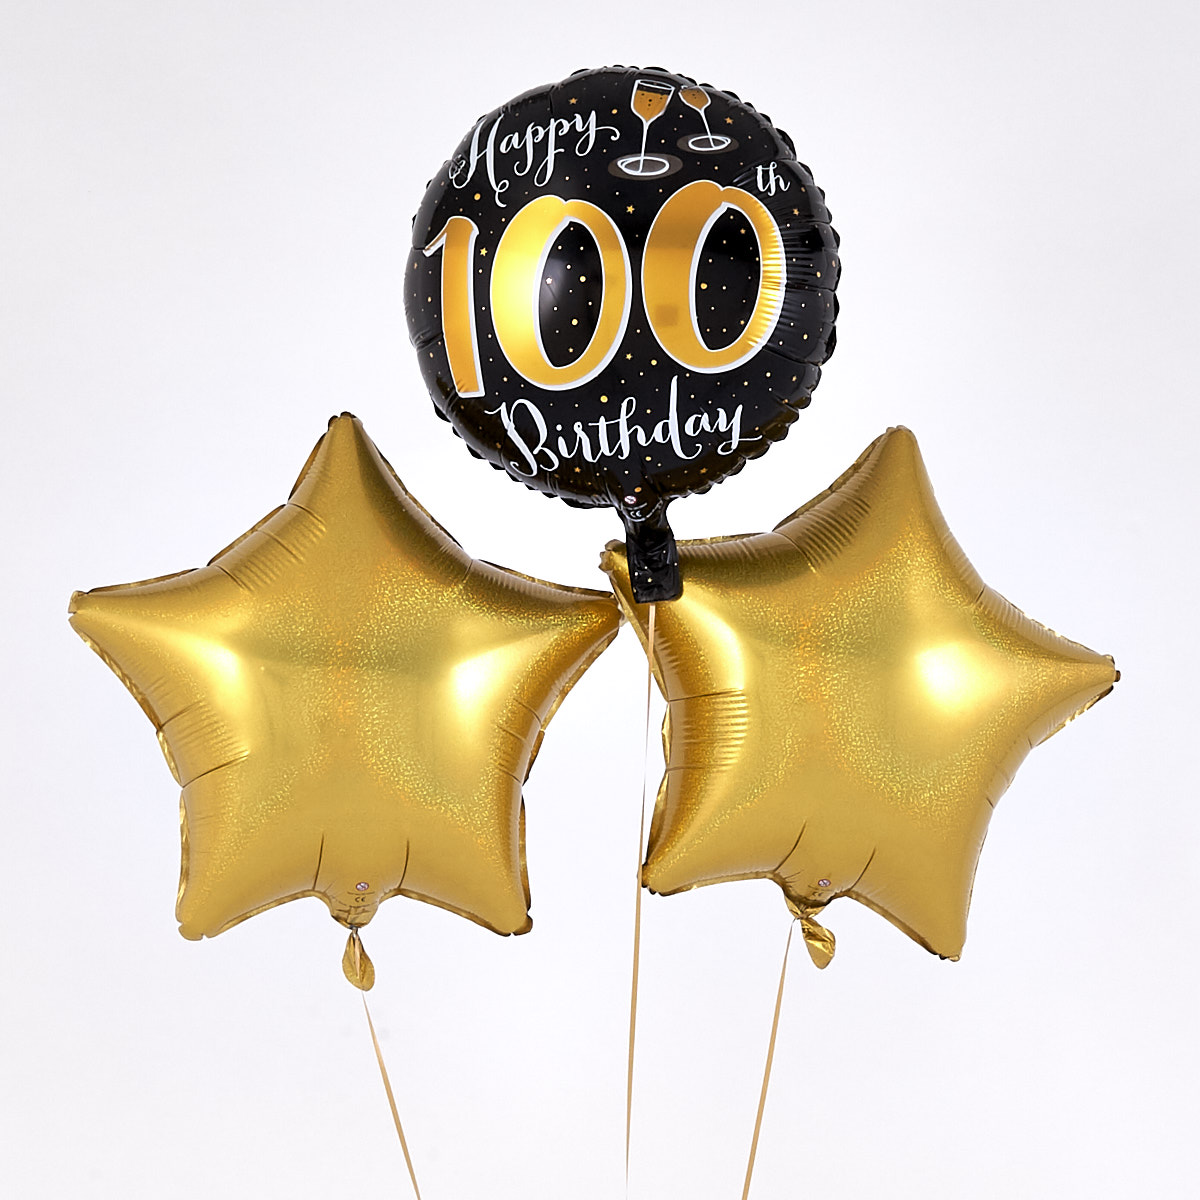 Happy 100th Birthday Gold Balloon Bouquet - The Perfect Gift!